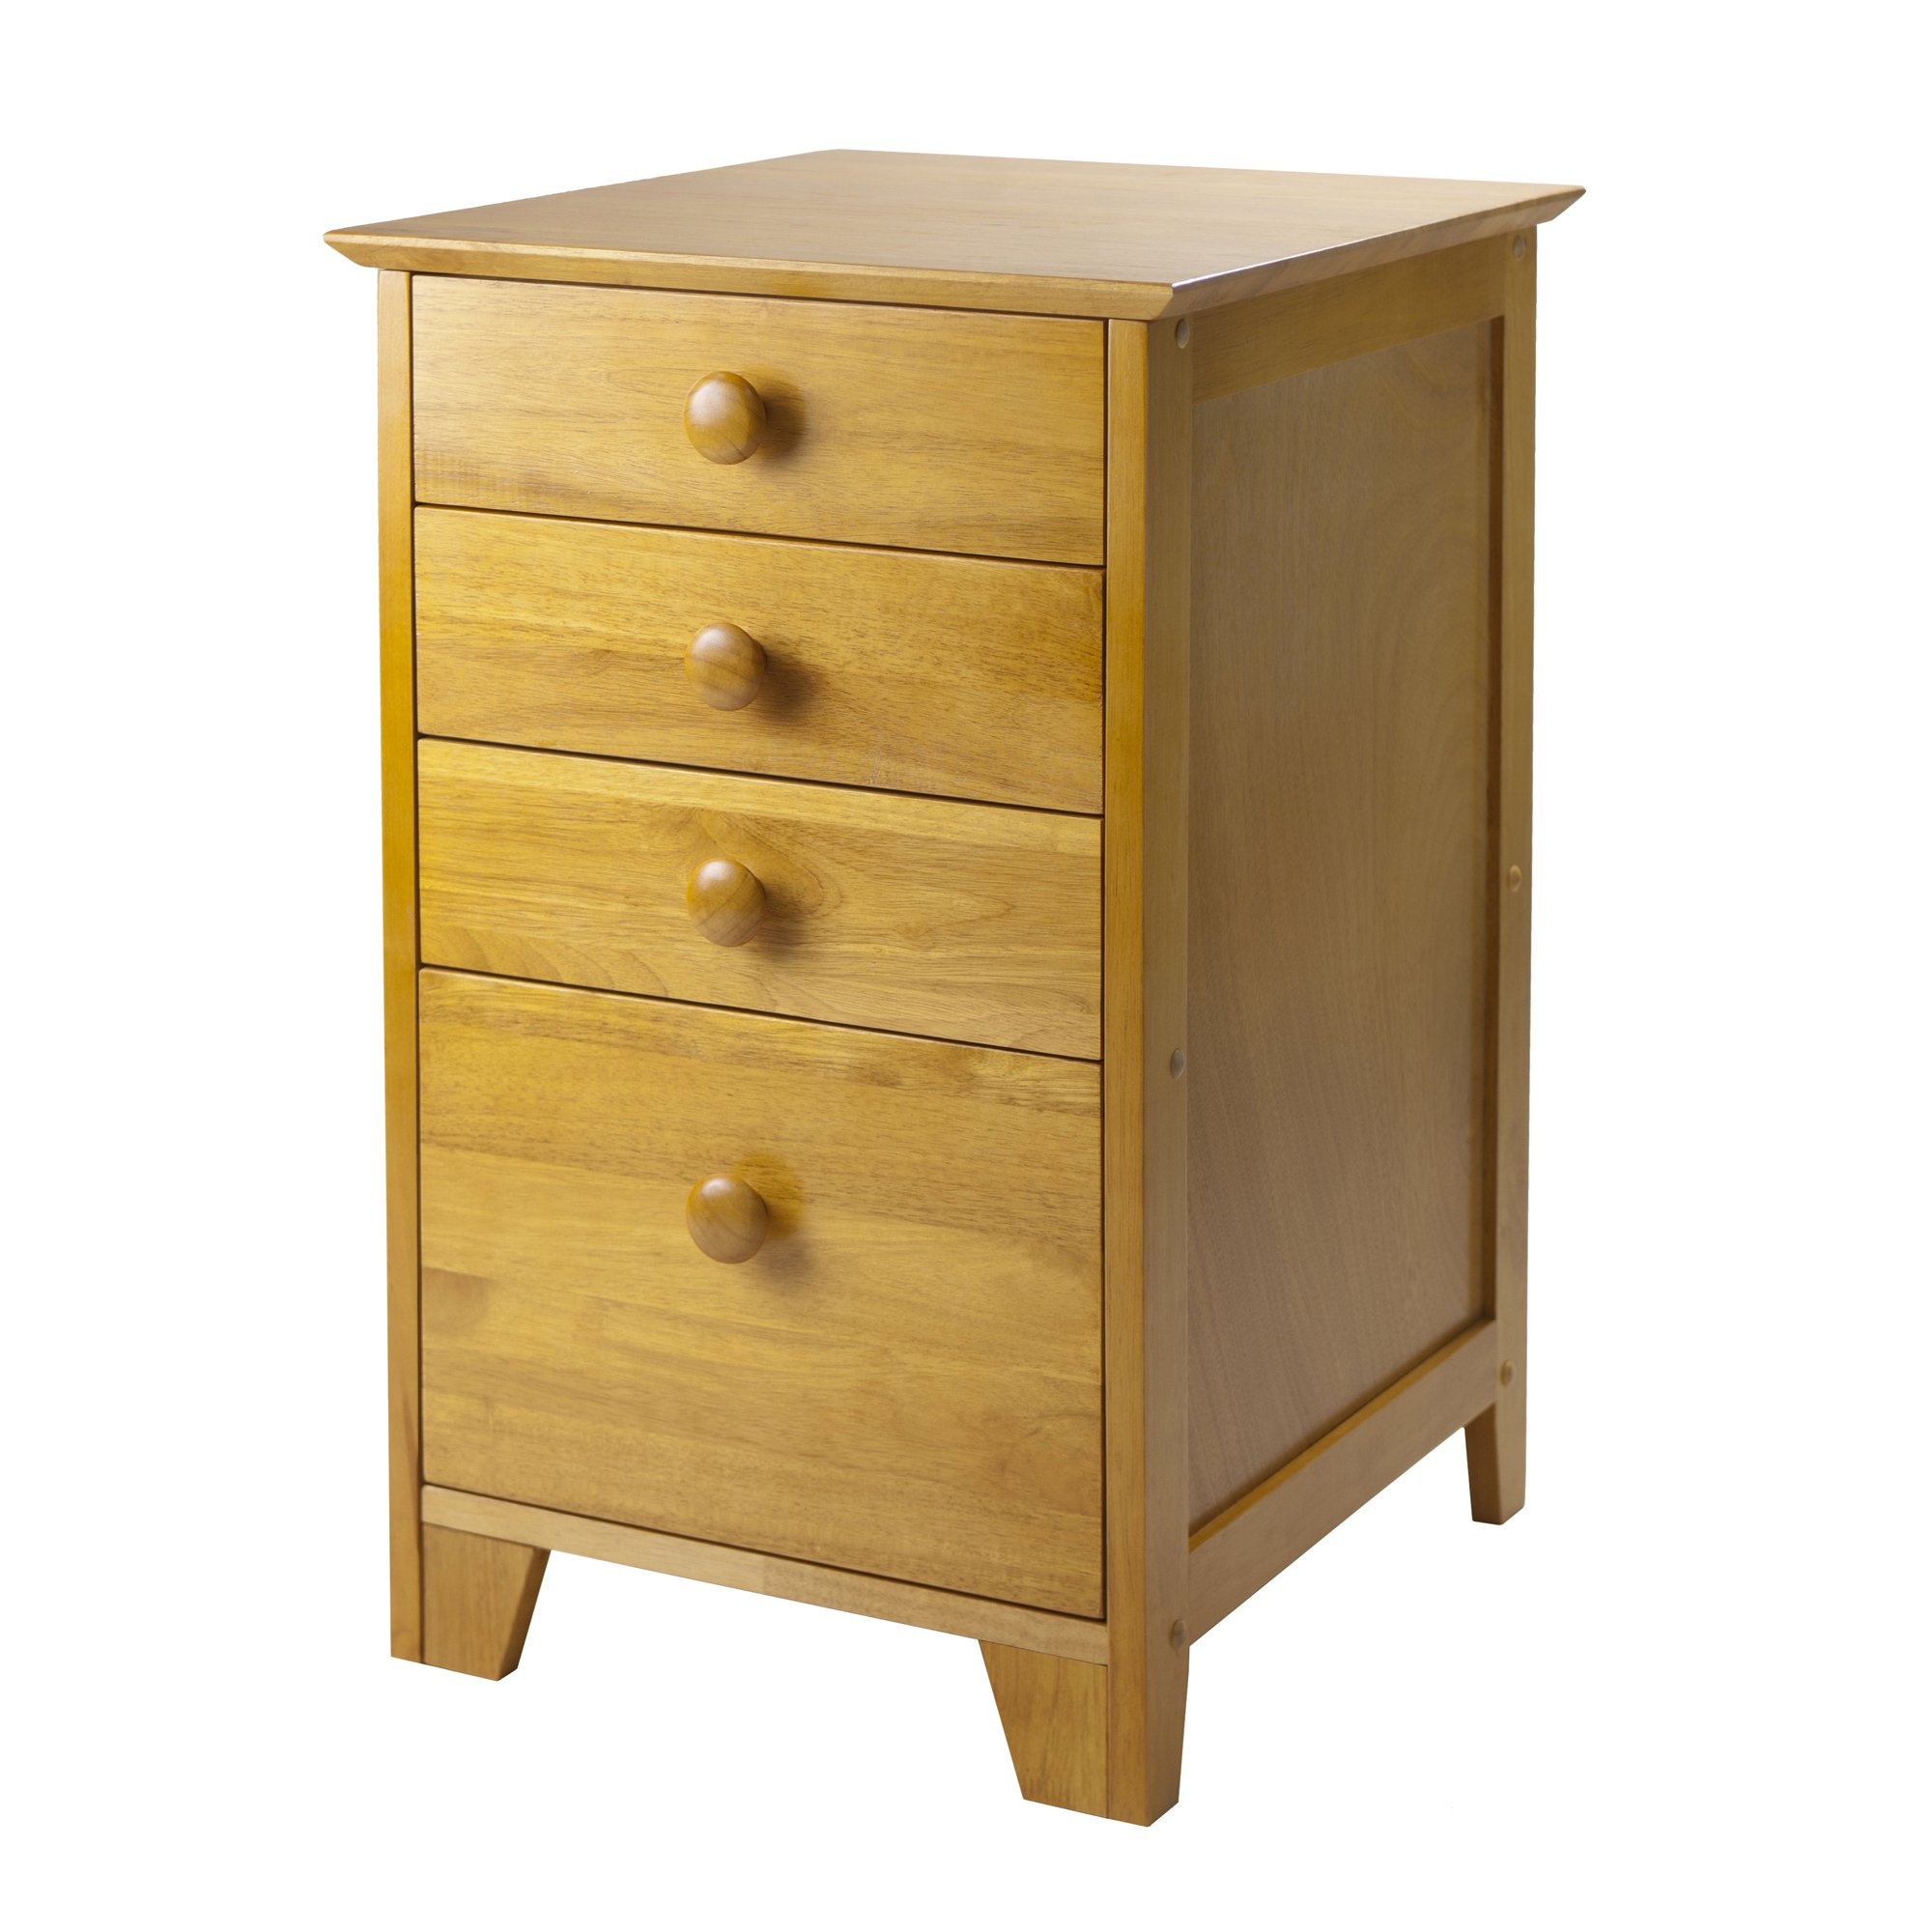 Winsome Wood Honey Pine Filing Cabinet - Extra Storage Drawers by Winsome Wood